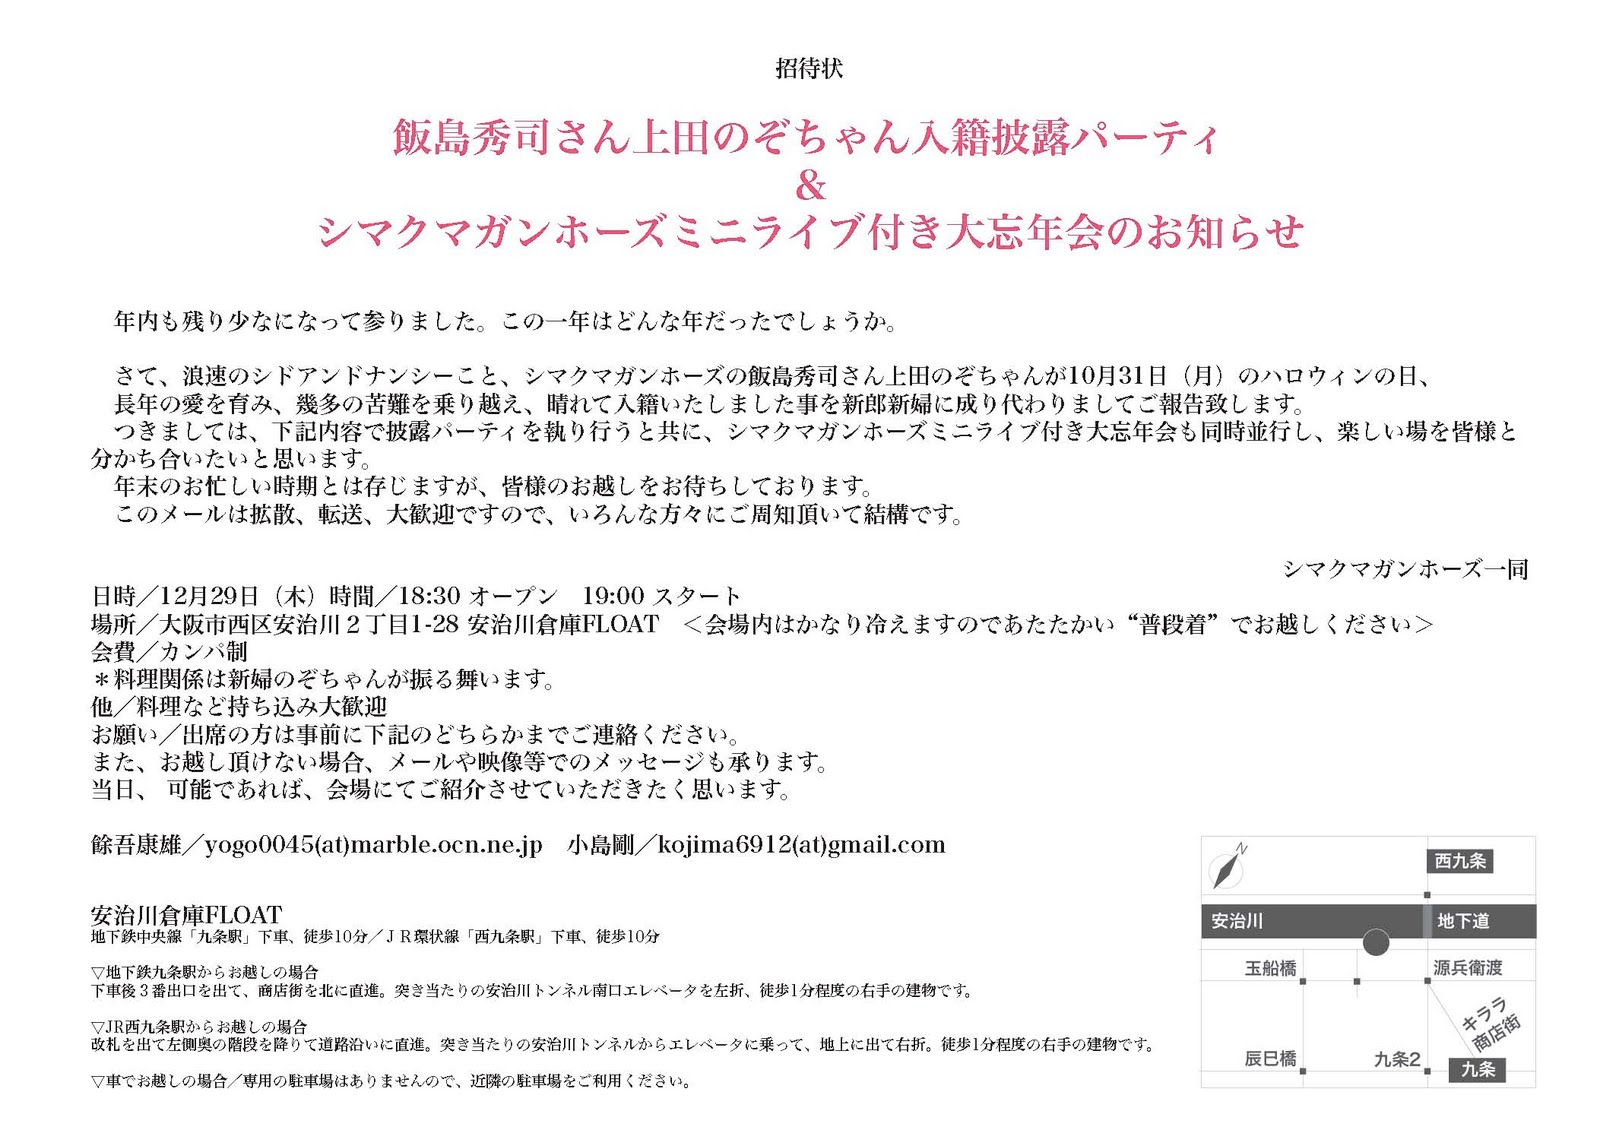 20111229invitationcard1